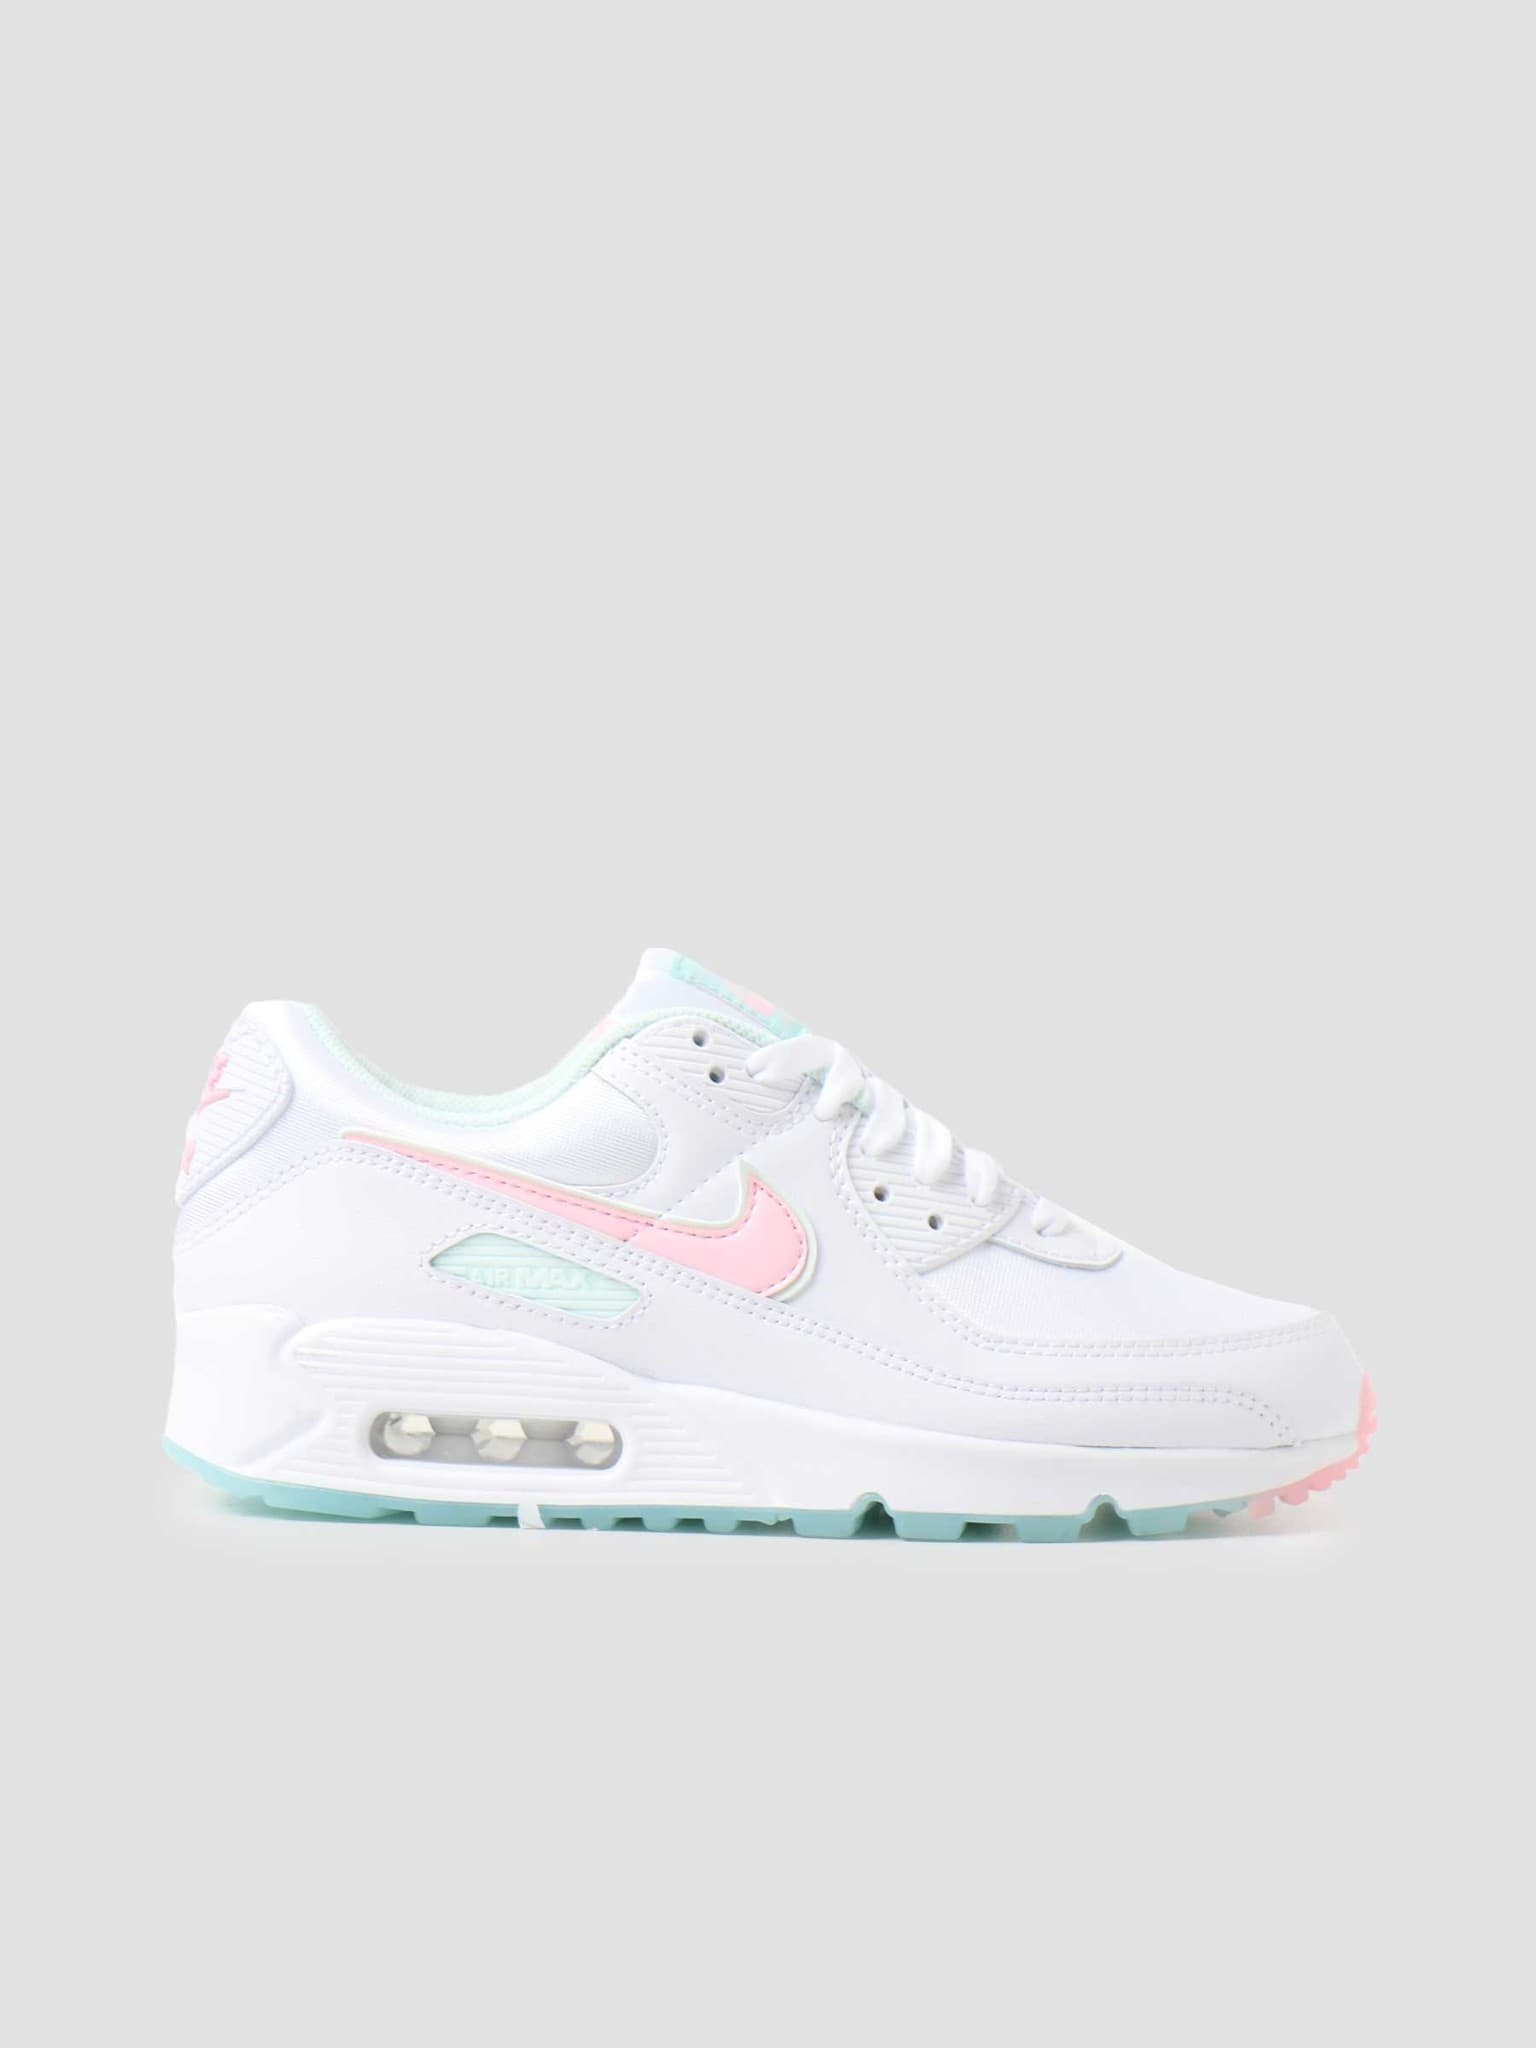 W Air Max 90 White Arctic Punch Barely Green DJ1493-100